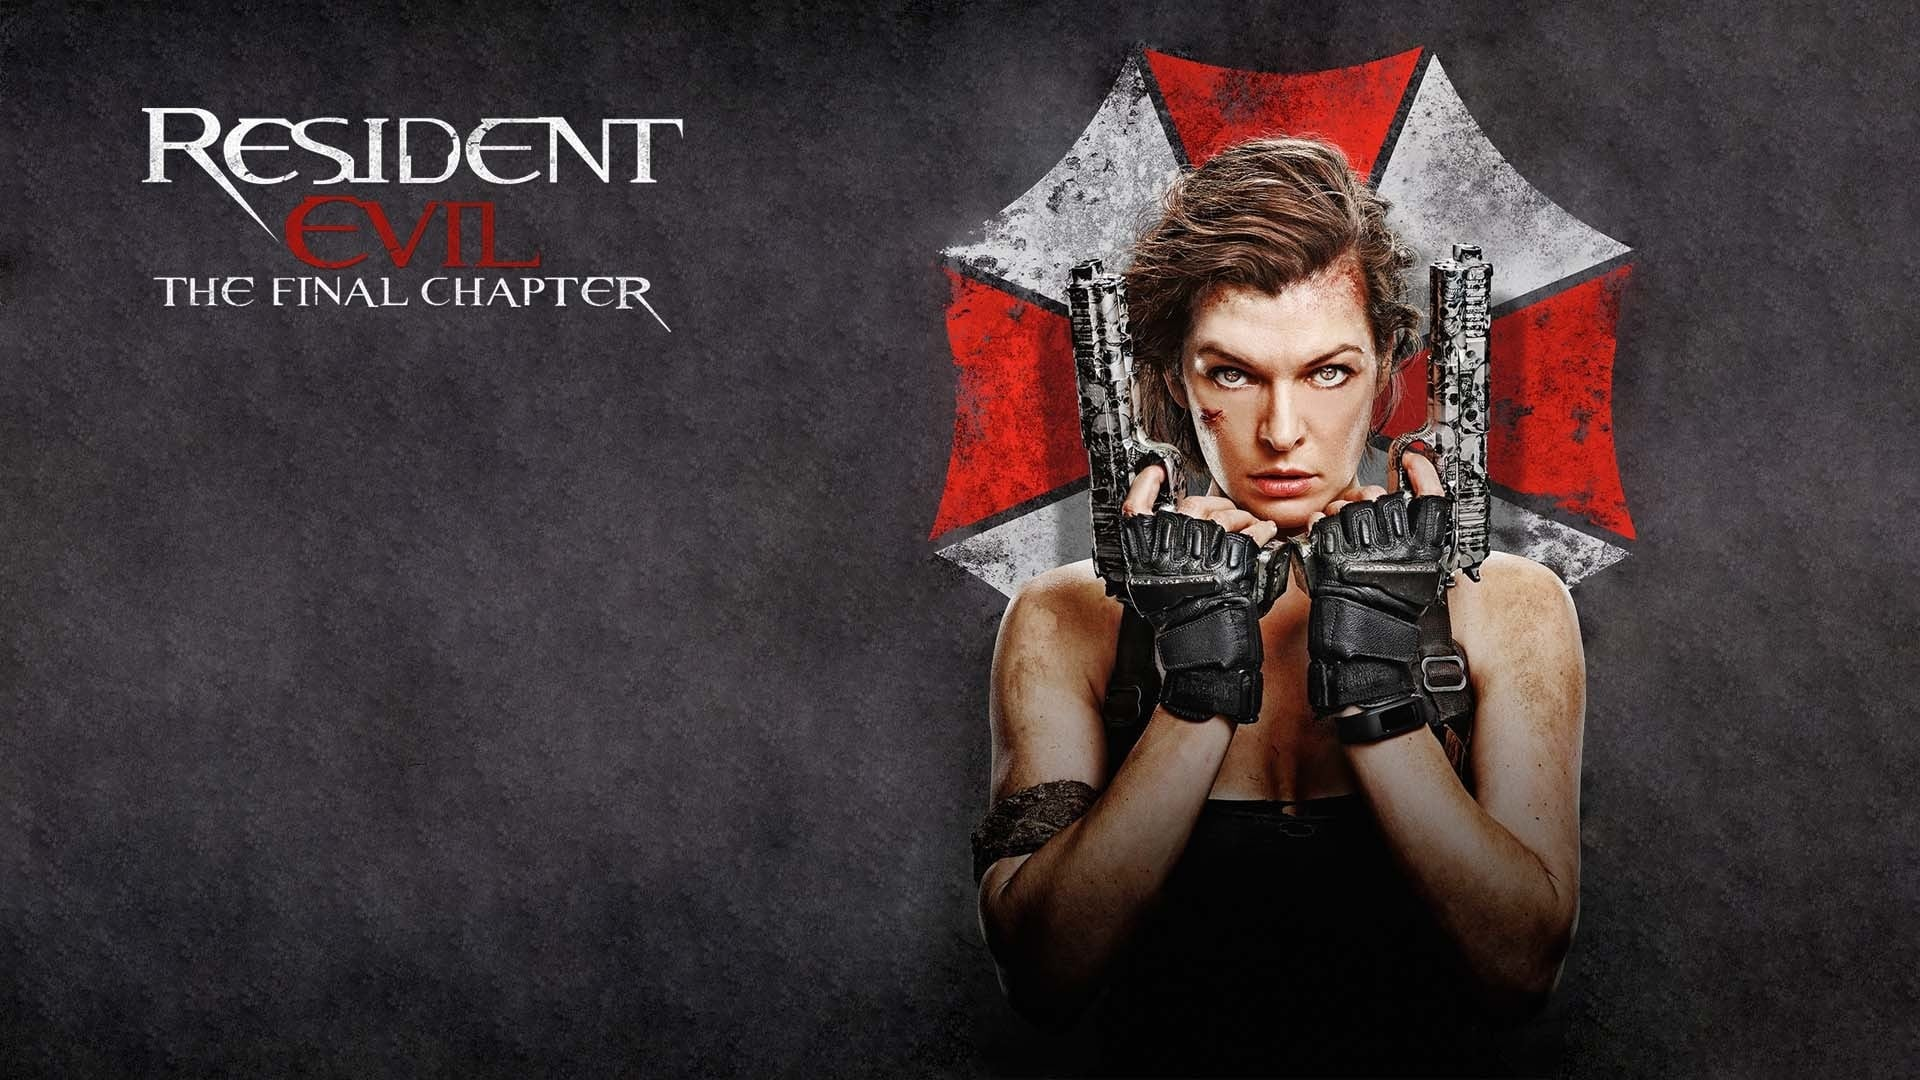 Resident Evil The Final Chapter 23: Watch Resident Evil: The Final Chapter (2016) Free Solar